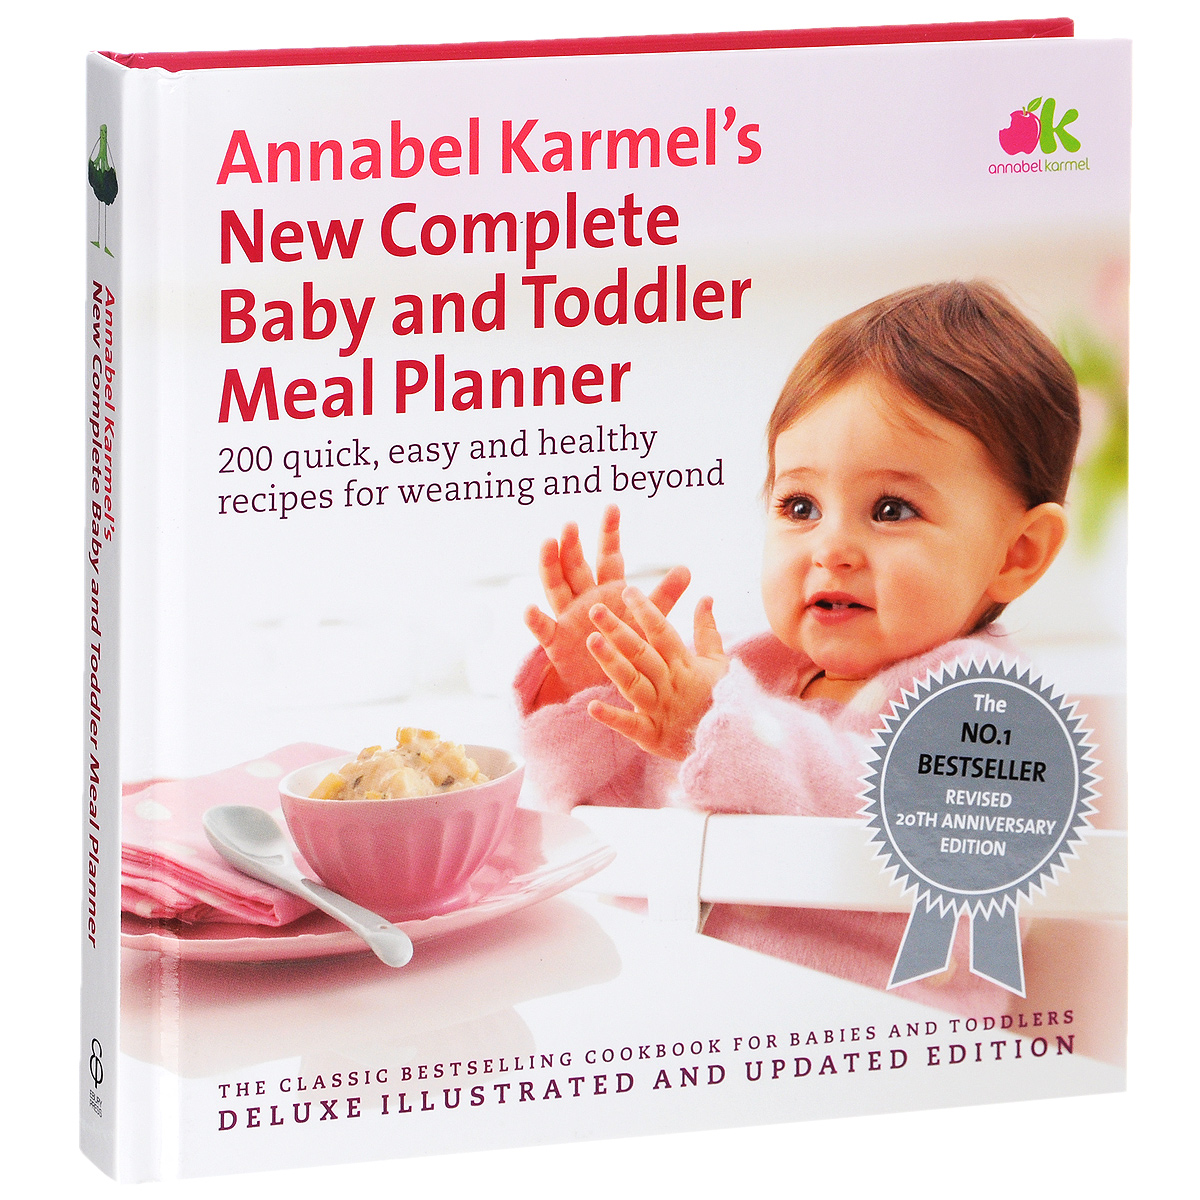 Annabel Karmel's New Complete Baby and Toddler Meal Planner: 200 Quick, Easy, and Healthy Recipes for Weaning and Beyond using crayfish waste meal and poultry offal meal in place of fishmeal